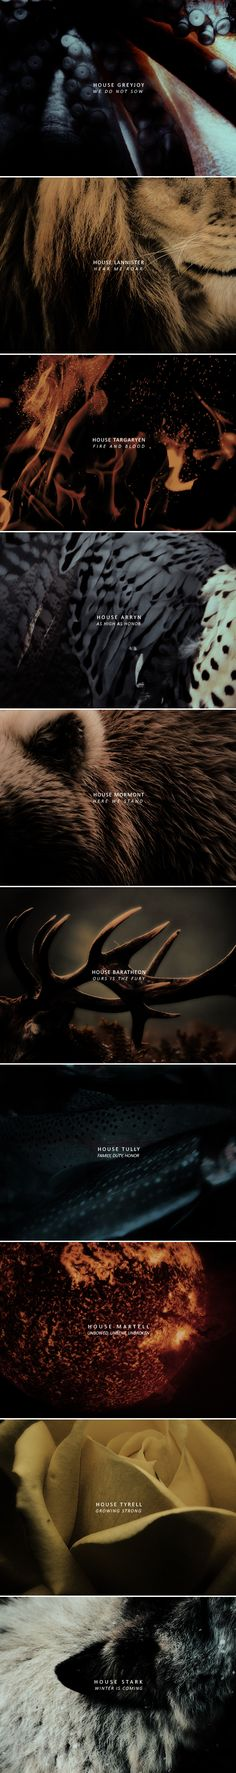 Remember who you are, what you were made to be. Remember your words. #asoiaf